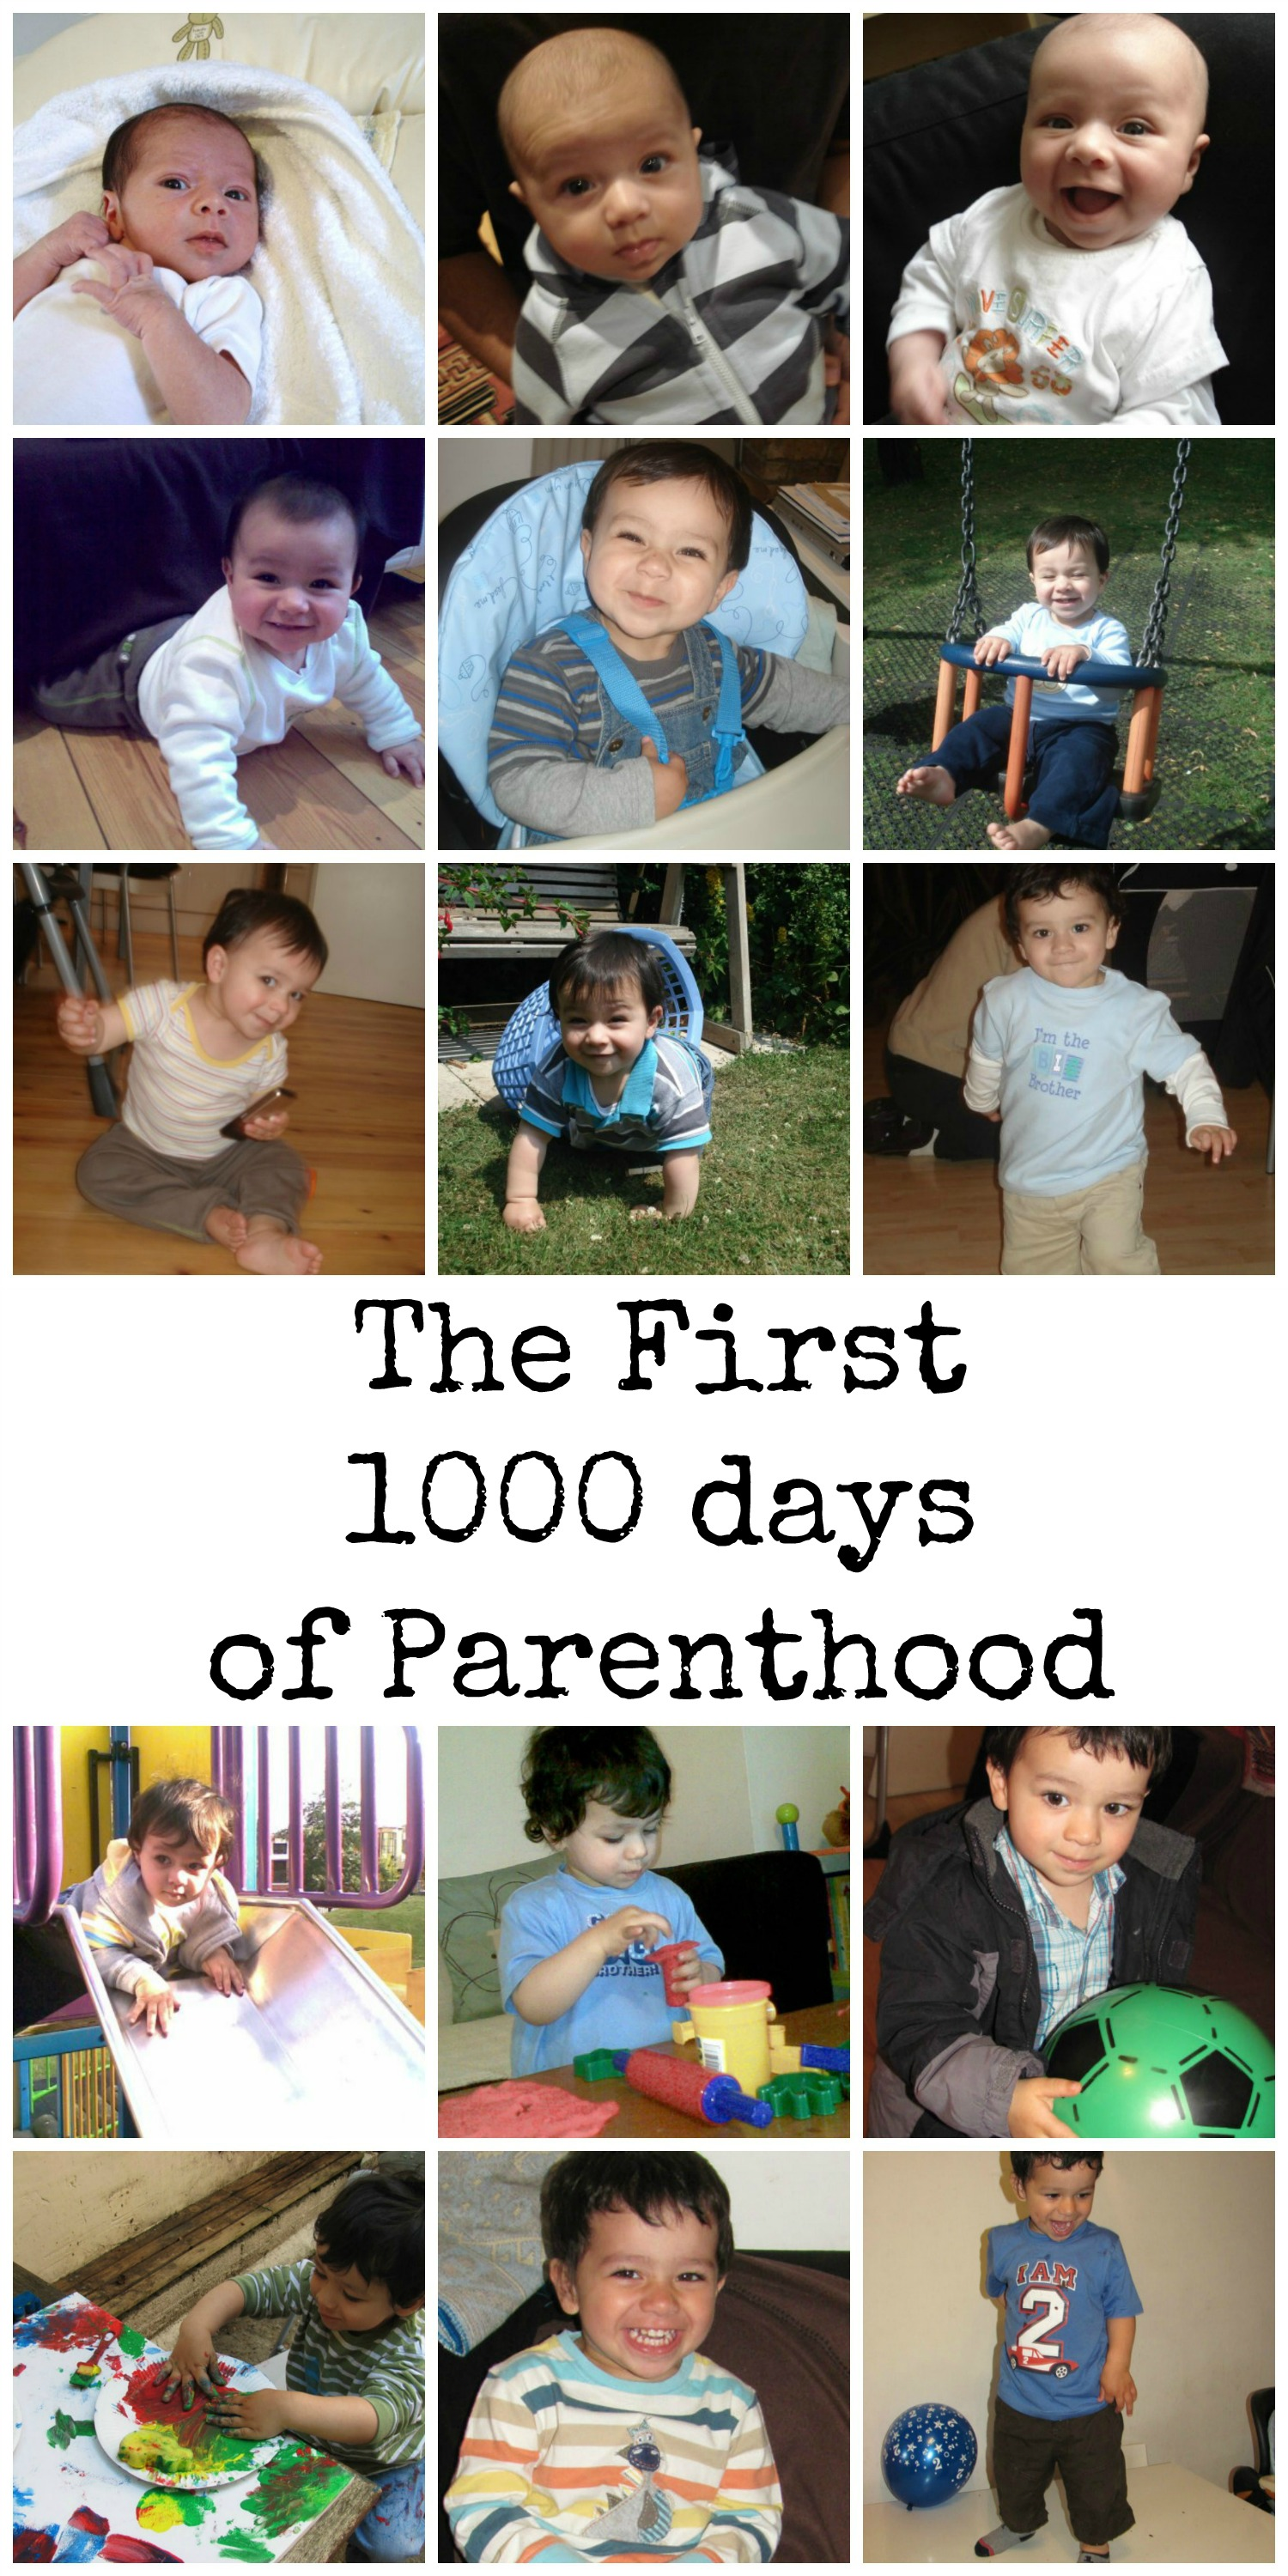 Research into the first 1000 days of parenthood, along with a must-watch touching video about the parenting journey